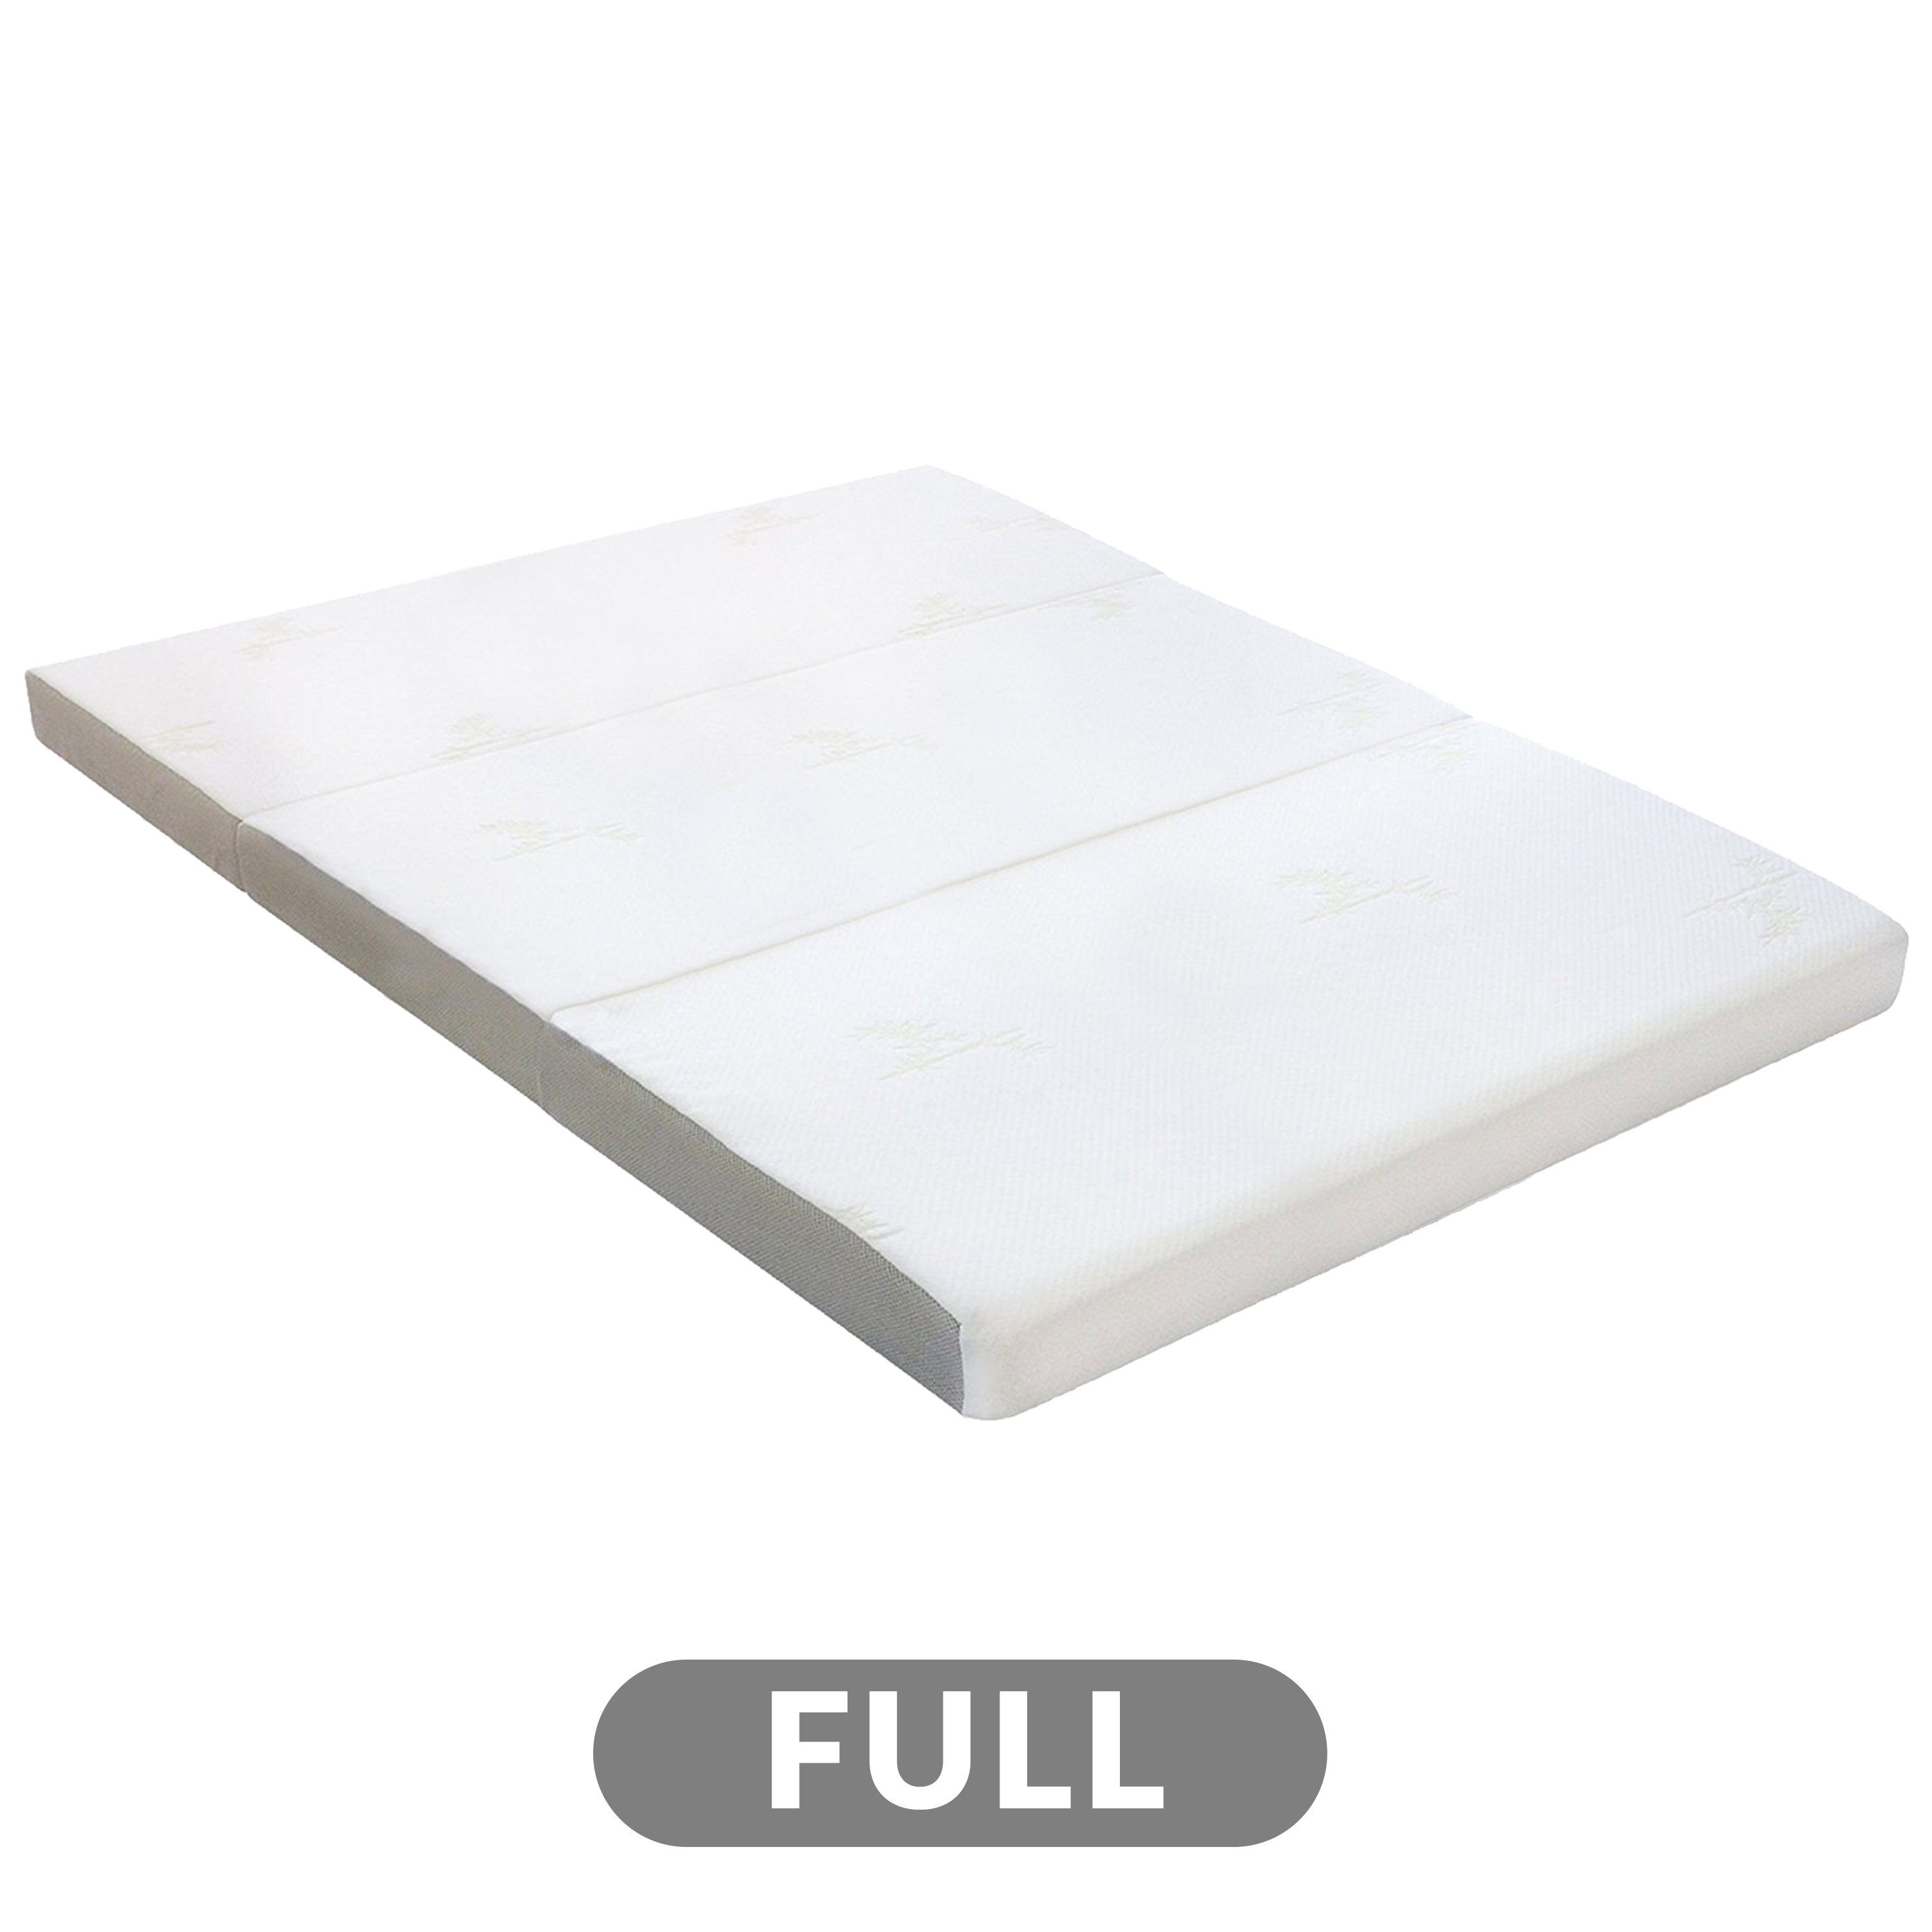 Picture of: 4 Tri Fold Foam Mattress With Cover Full Milliard Bedding The Ultimate Sleep Experience